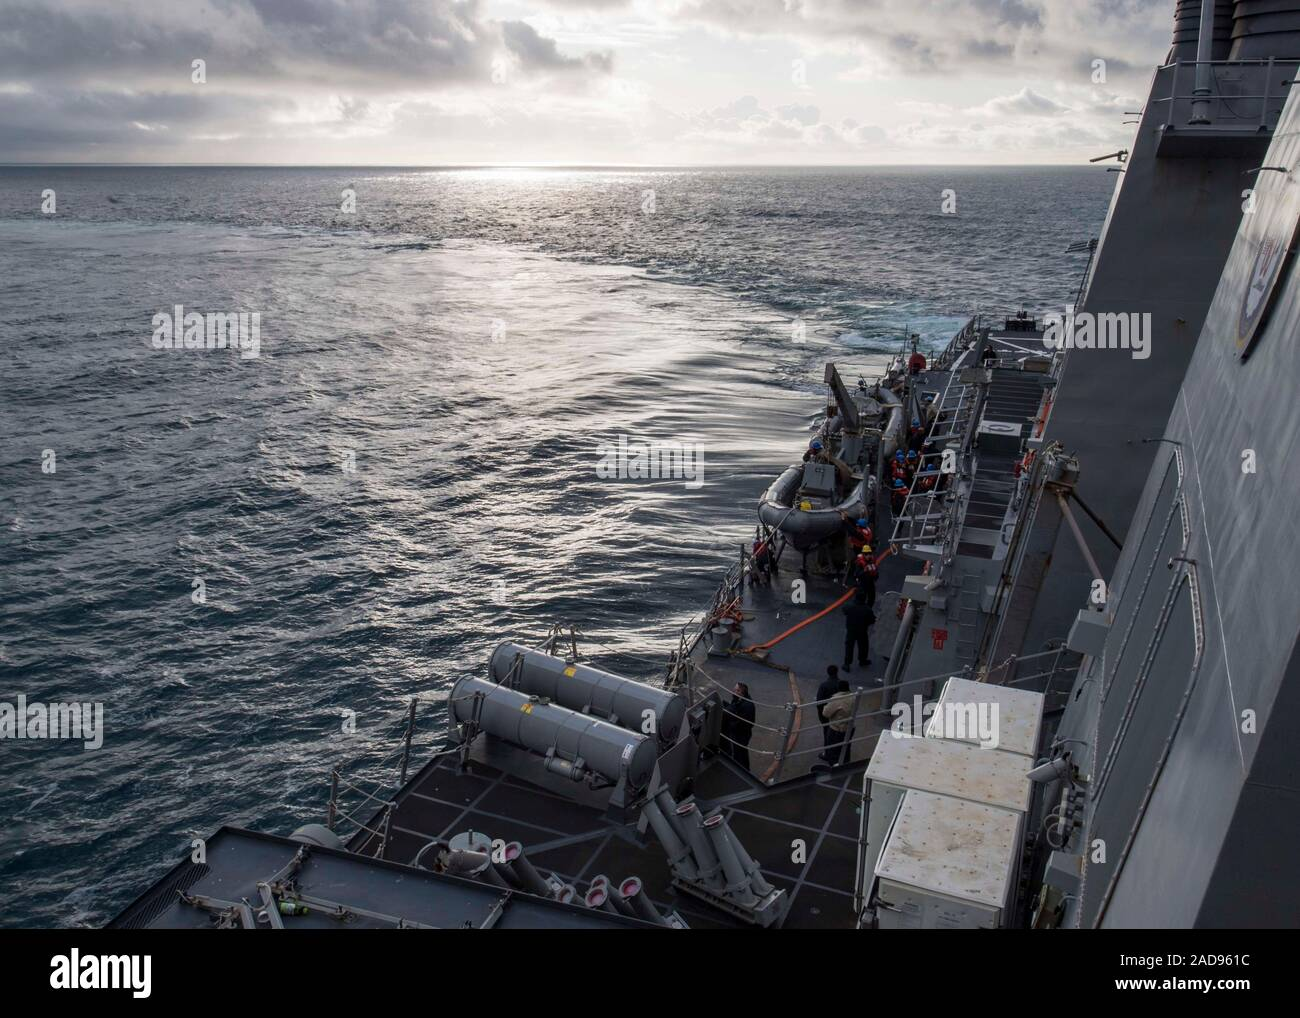 191129-N-TI693-1001    ATLANTIC OCEAN (Nov. 29, 2019) - Sailors assigned to the Arleigh Burke-class guided-missile destroyer USS Carney (DDG 64) man the boat deck for a man overboard drill as part of the U.K.-led Flag Officer Sea Training (FOST), Nov. 29, 2019. FOST's training is designed to prepare all types of navy vessels and auxiliaries for peacetime, peace-support, and war-fighting operations. Carney, forward-deployed to Rota, Spain, is on its seventh patrol in the U.S. 6th Fleet area of operations in support of regional allies and partners as well as U.S. national security interests in E Stock Photo